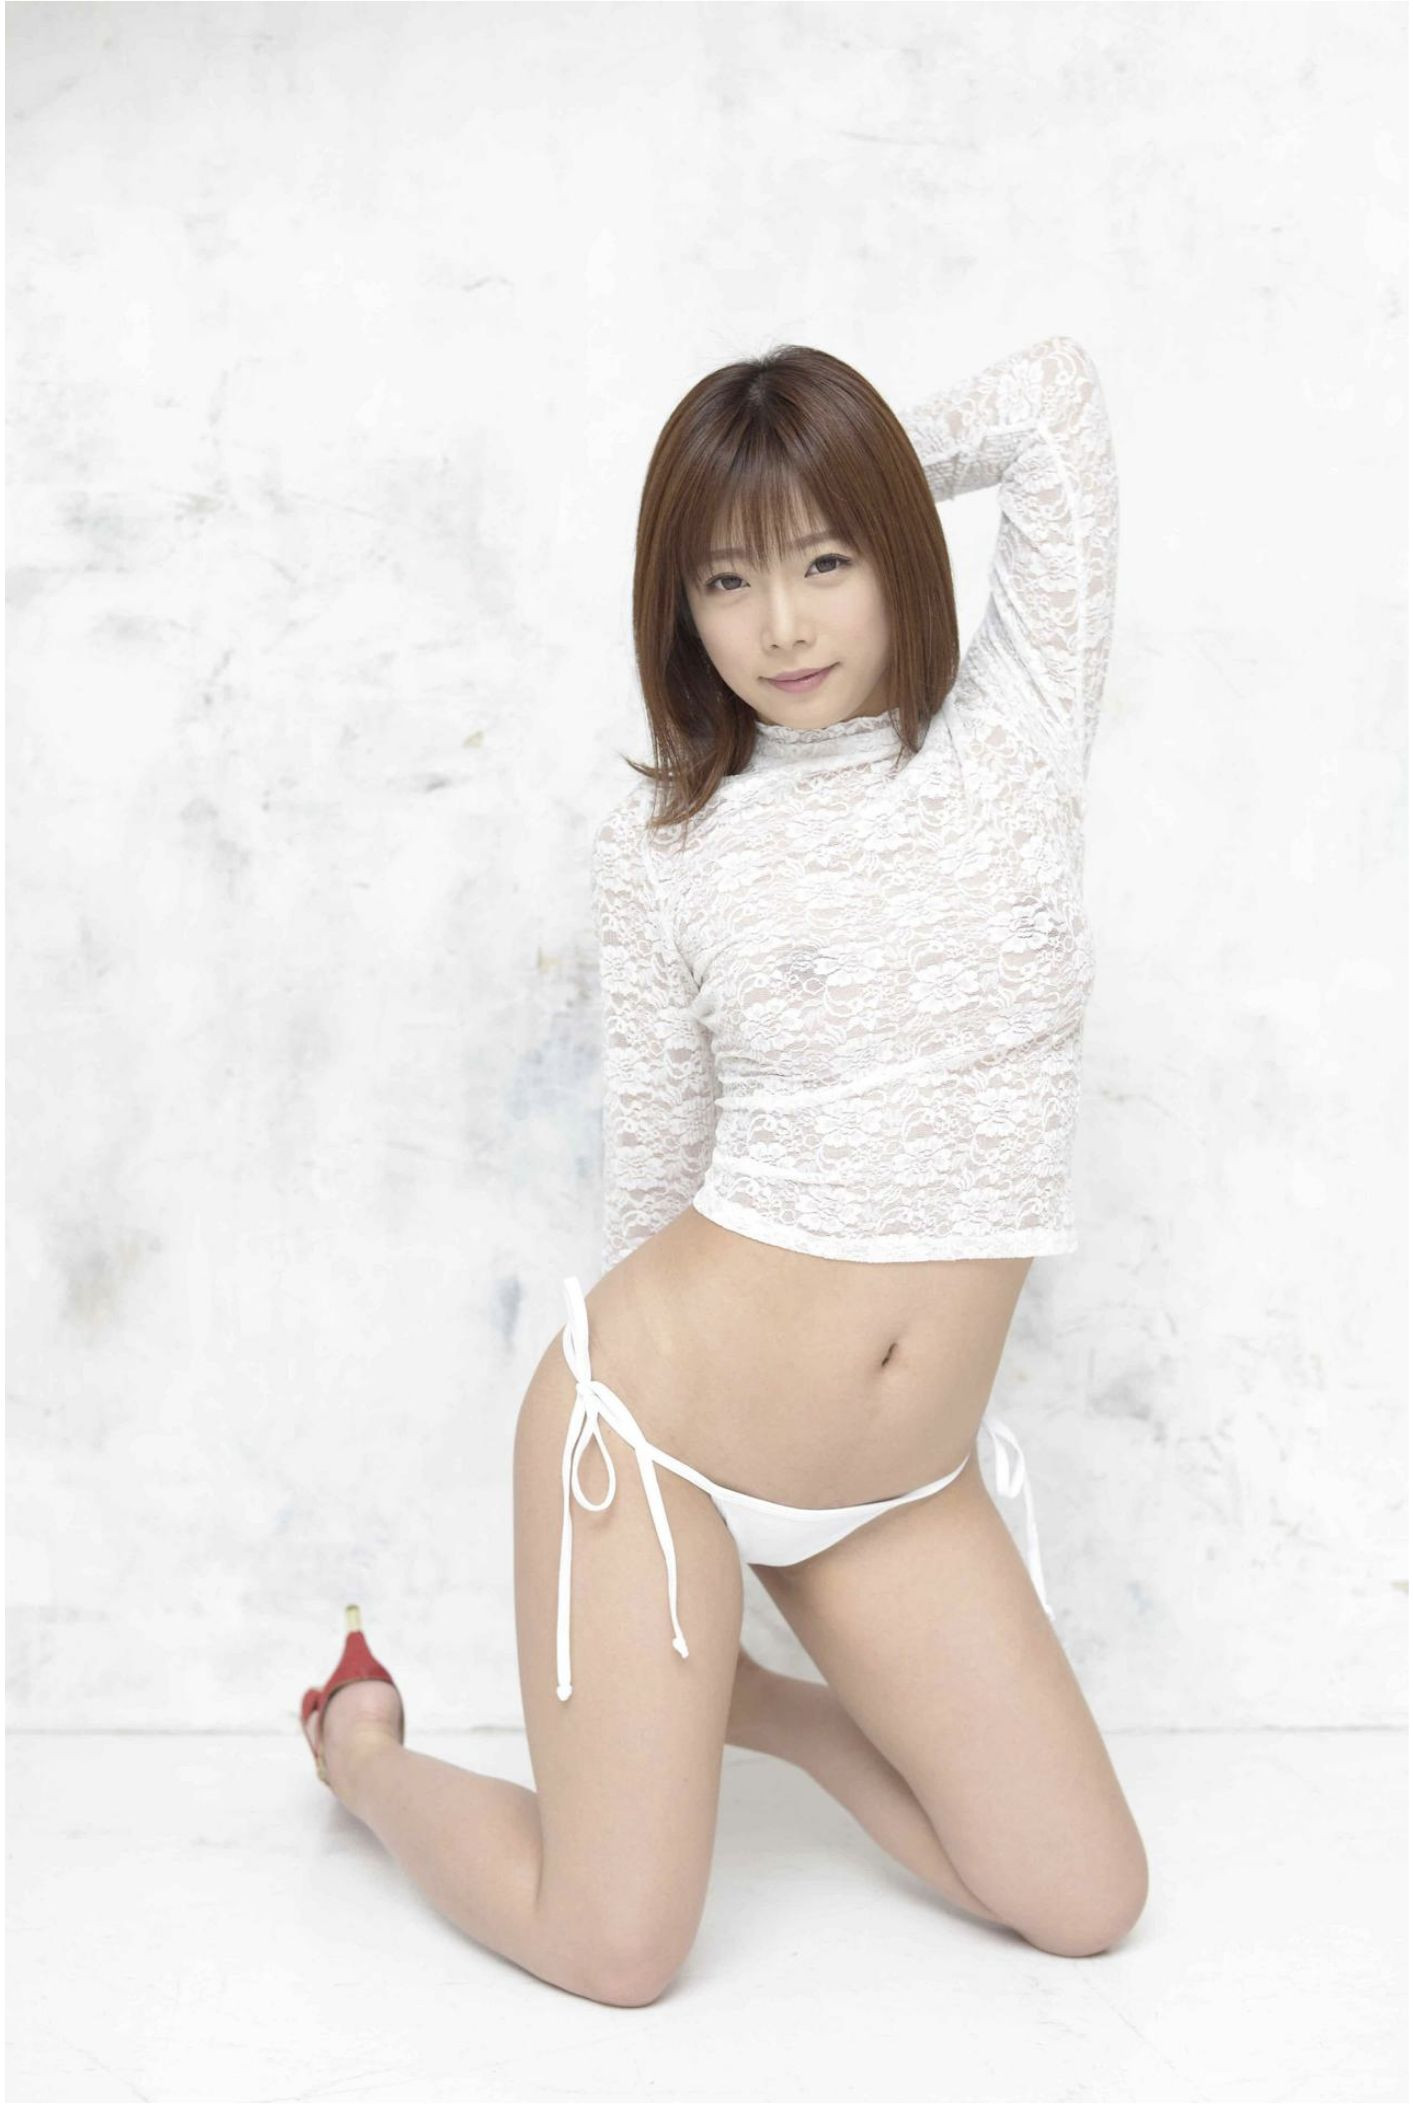 SOFT ON DEMAND GRAVURE COLLECTION 紗倉まな04 photo 032